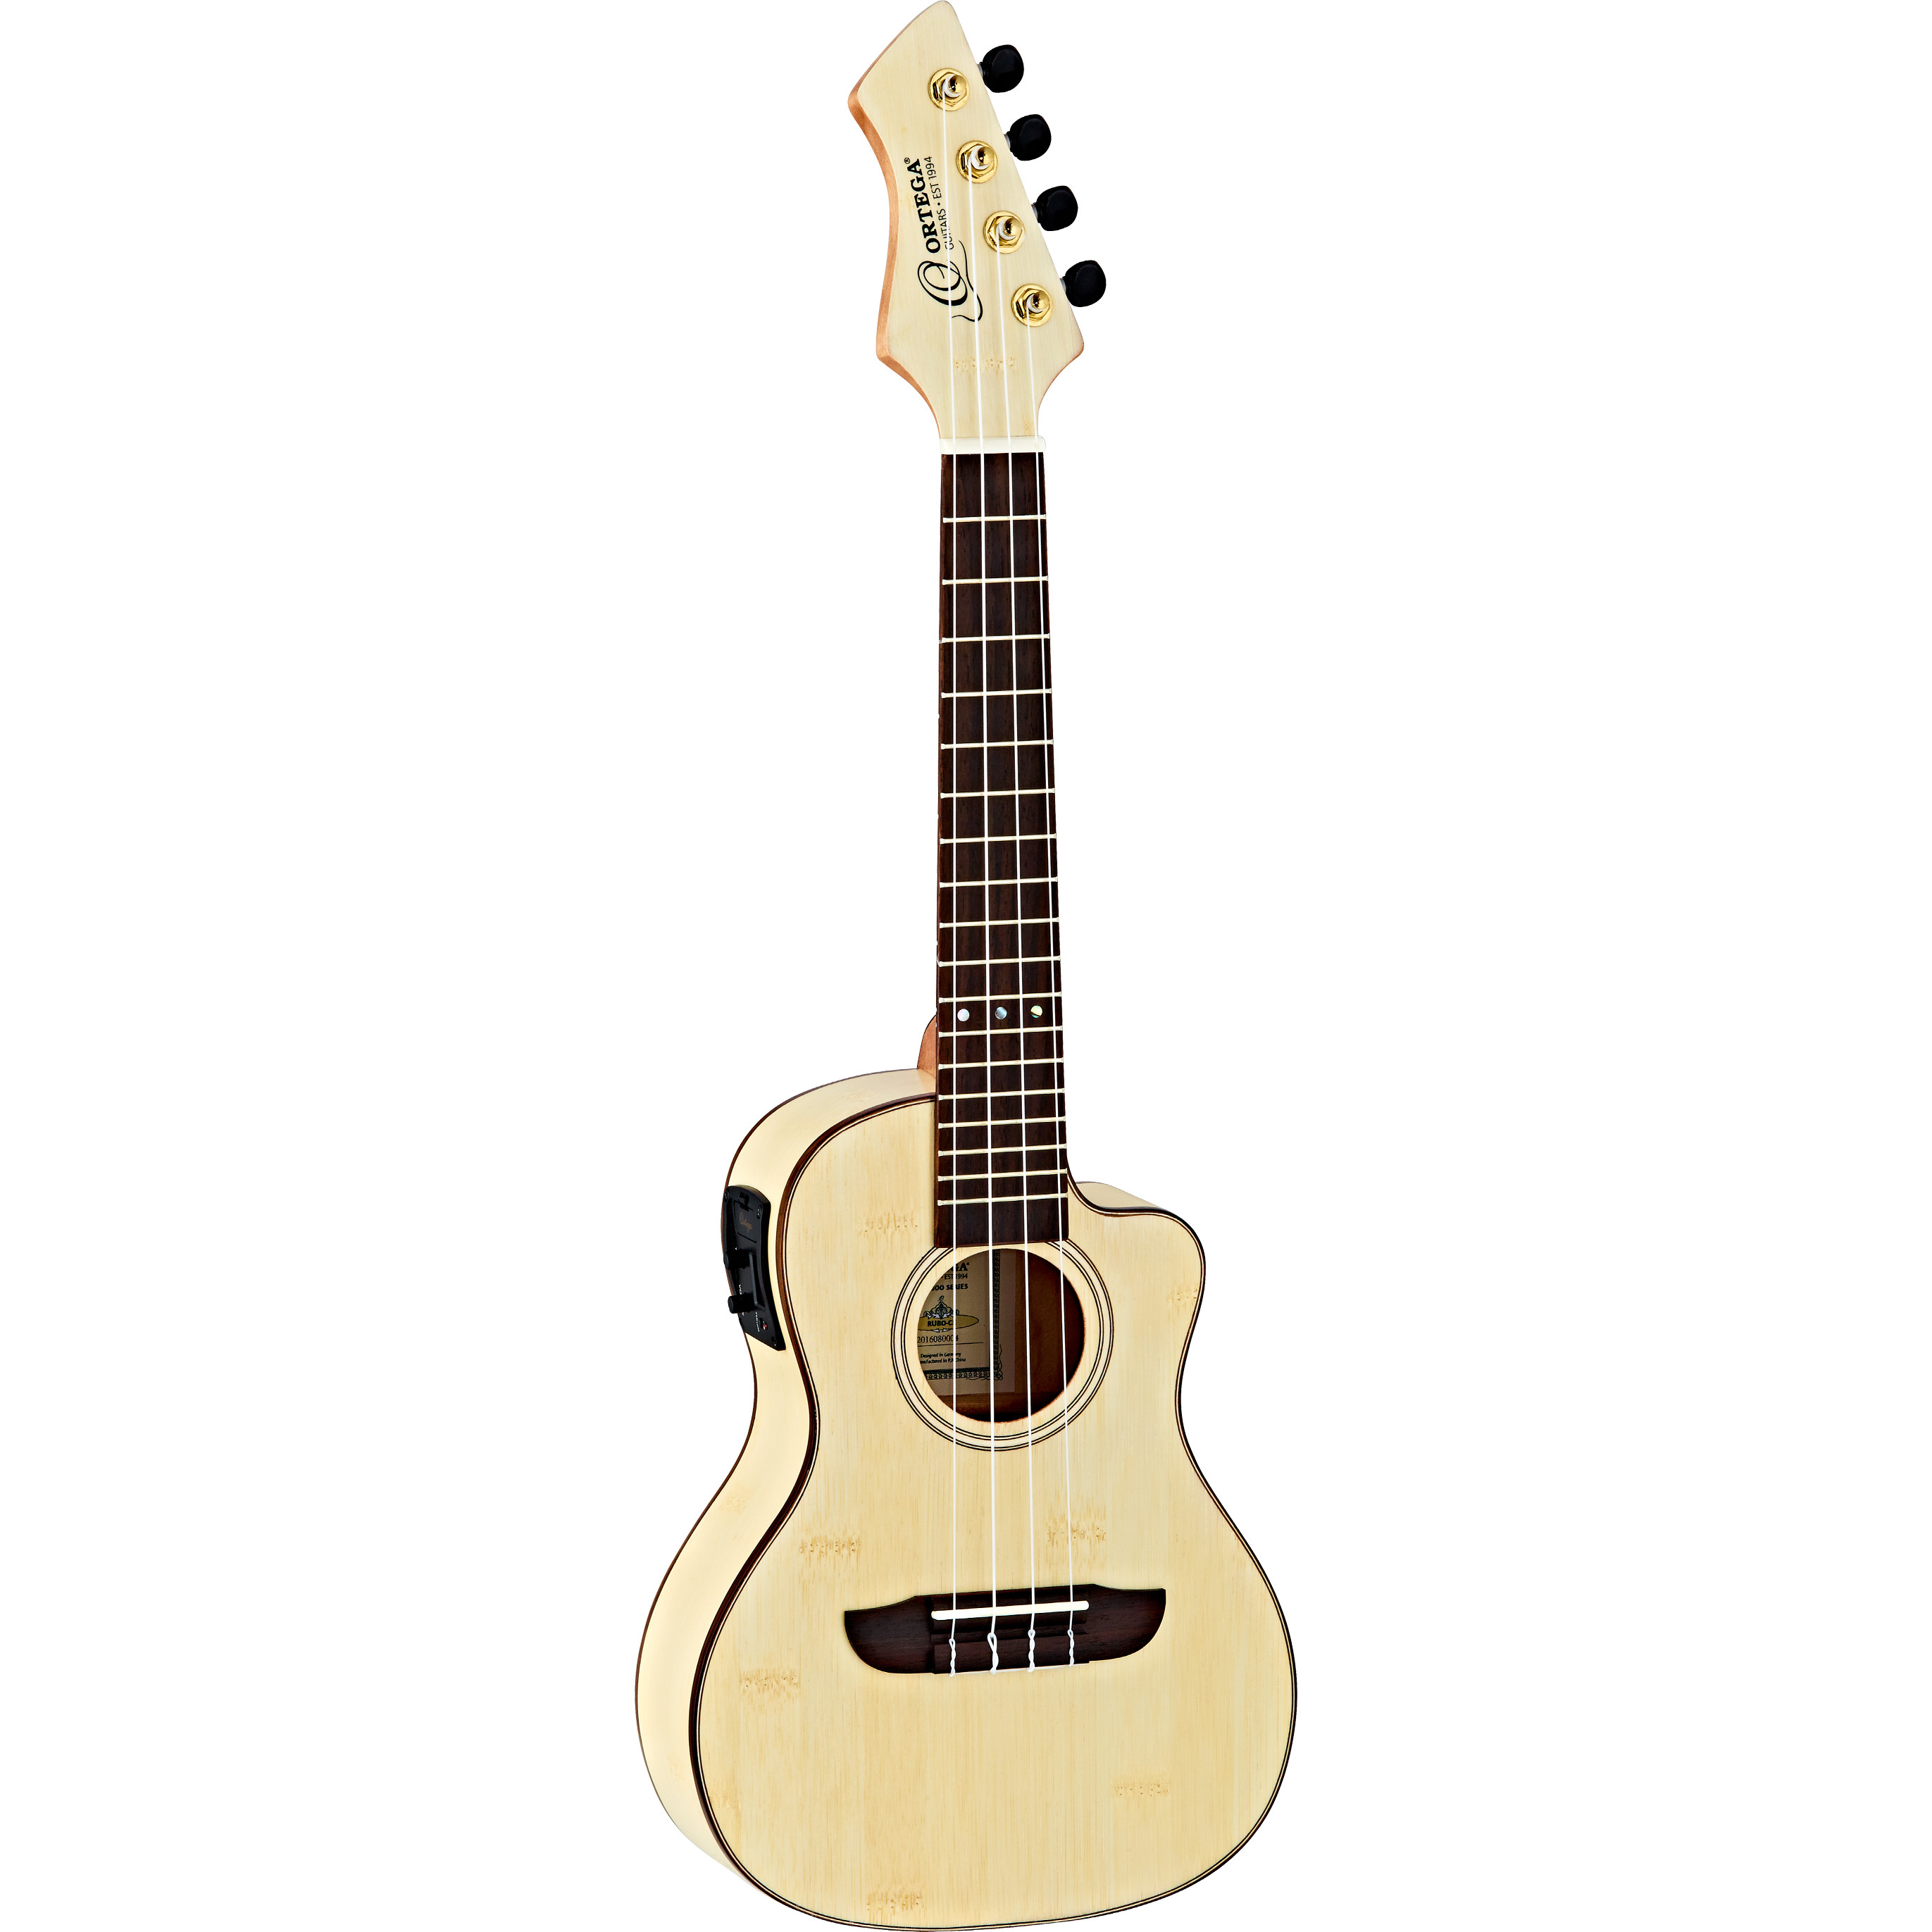 Ortega Horizon Series RUBO CE electro acoustic concert ukulele with gig bag